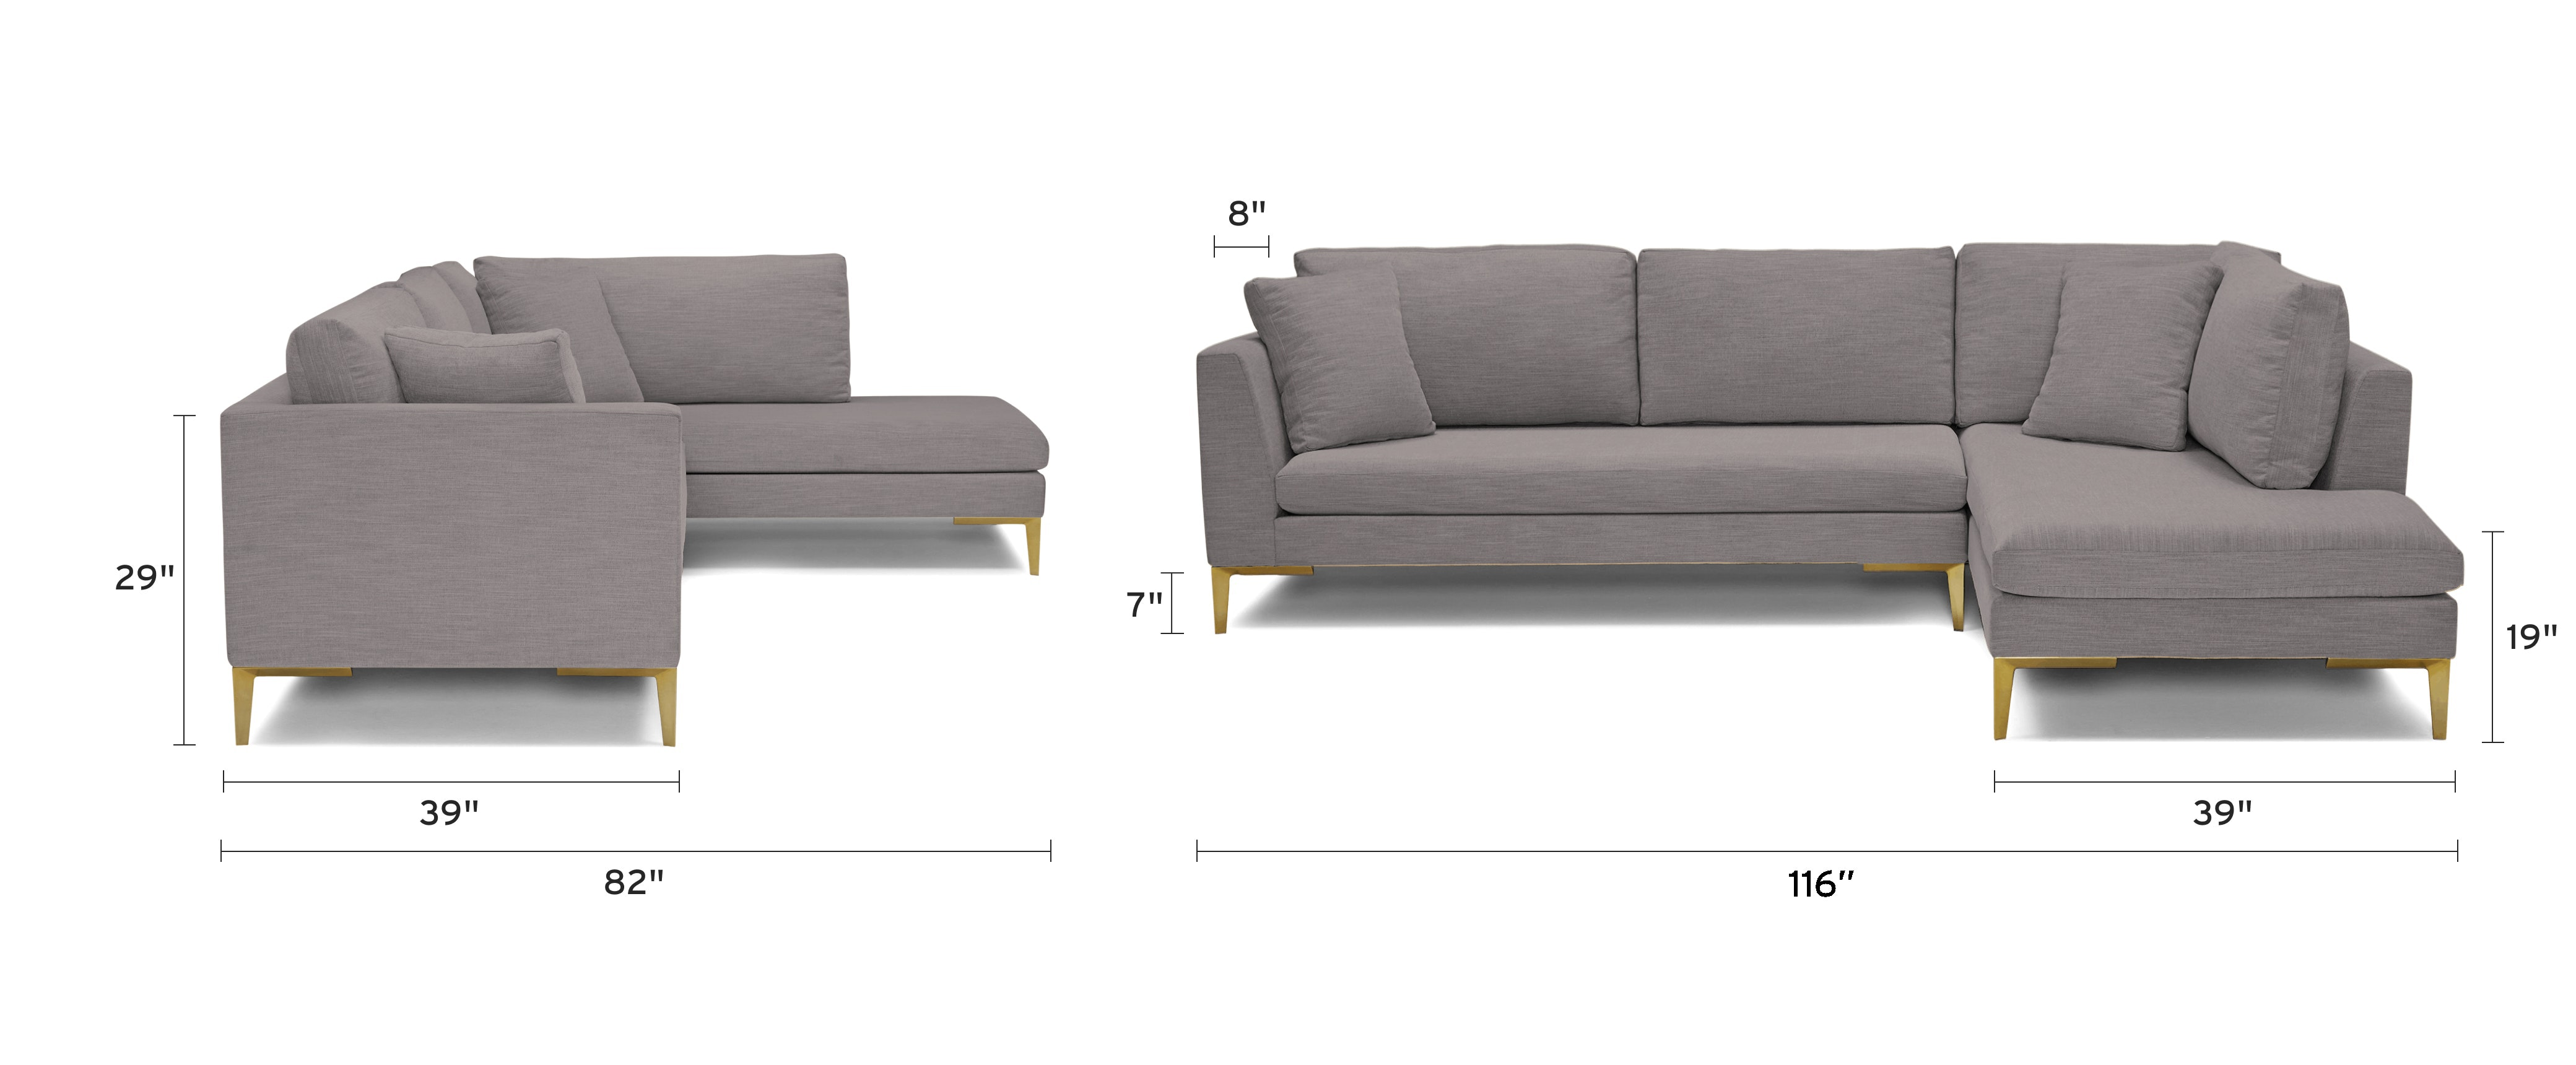 ainsley sectional with bumper piece)